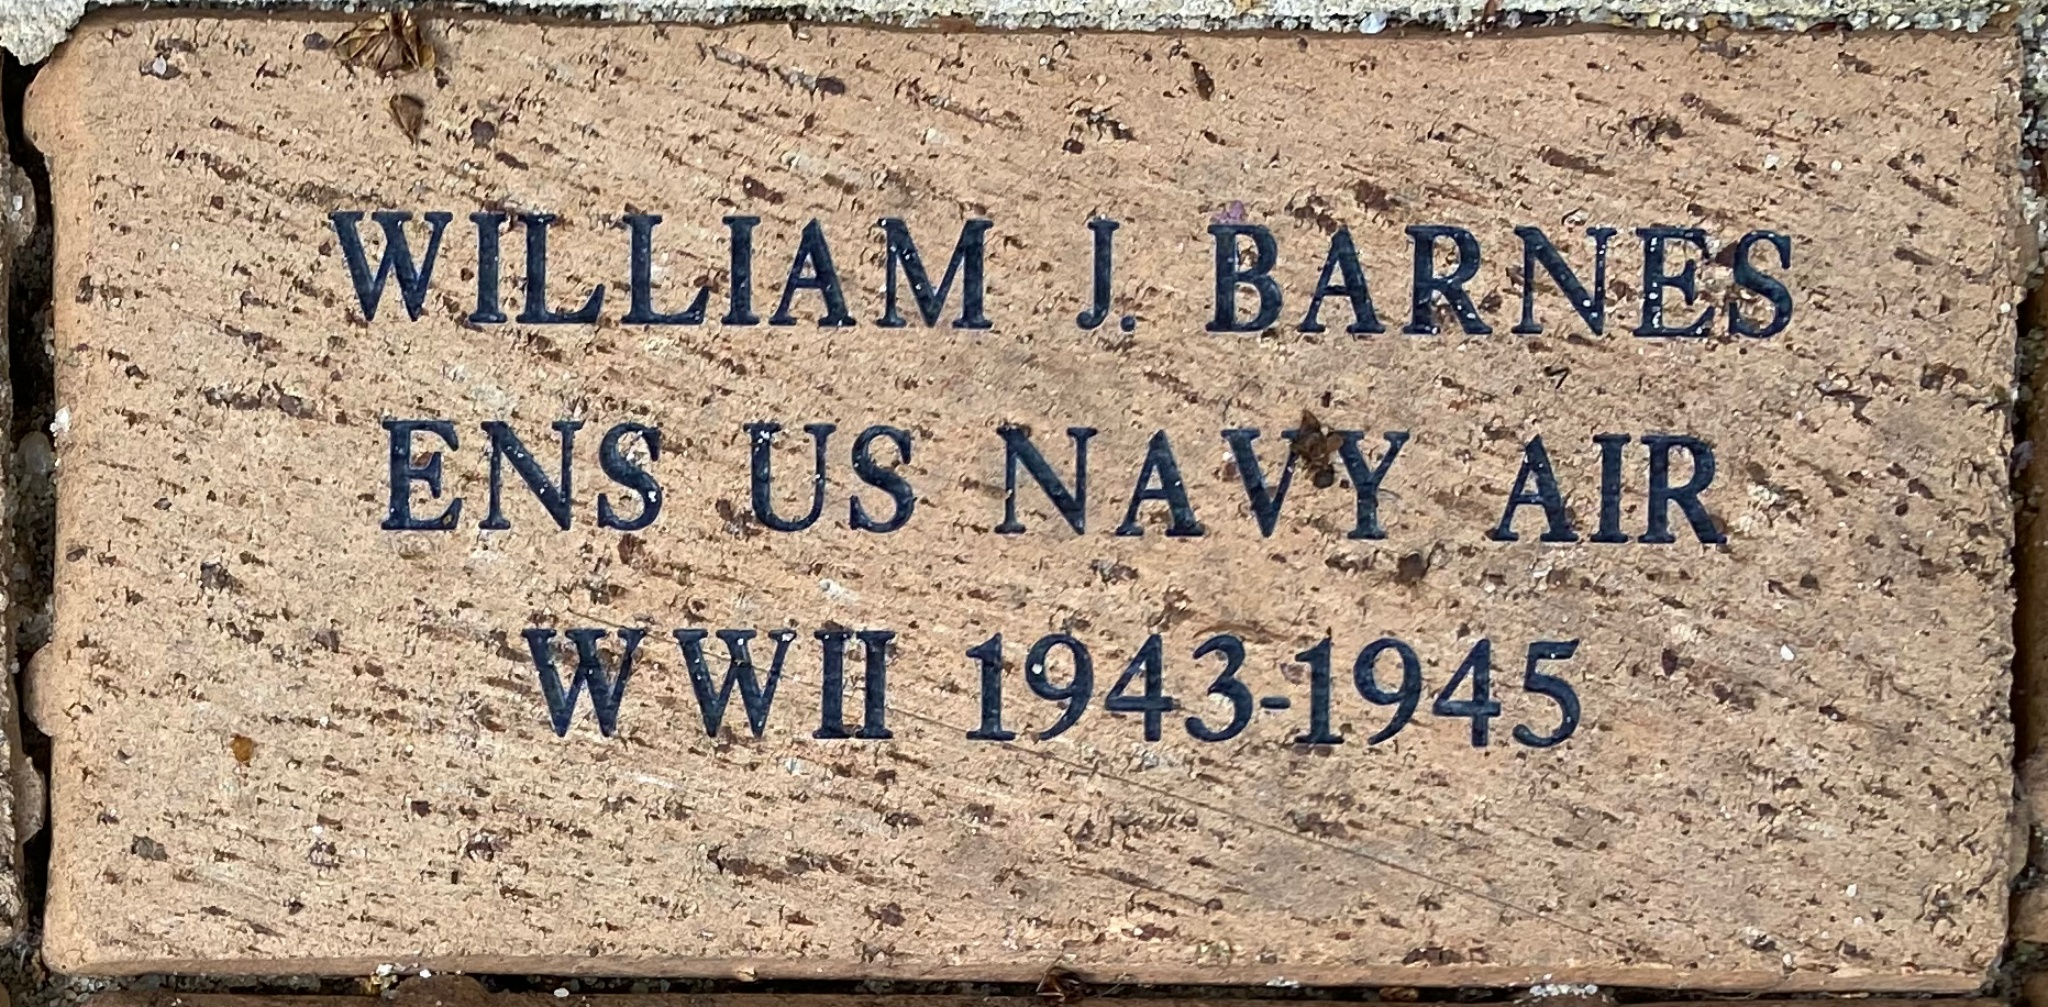 WILLIAM J. BARNES ENS US NAVY AIR WWII 1943-1945